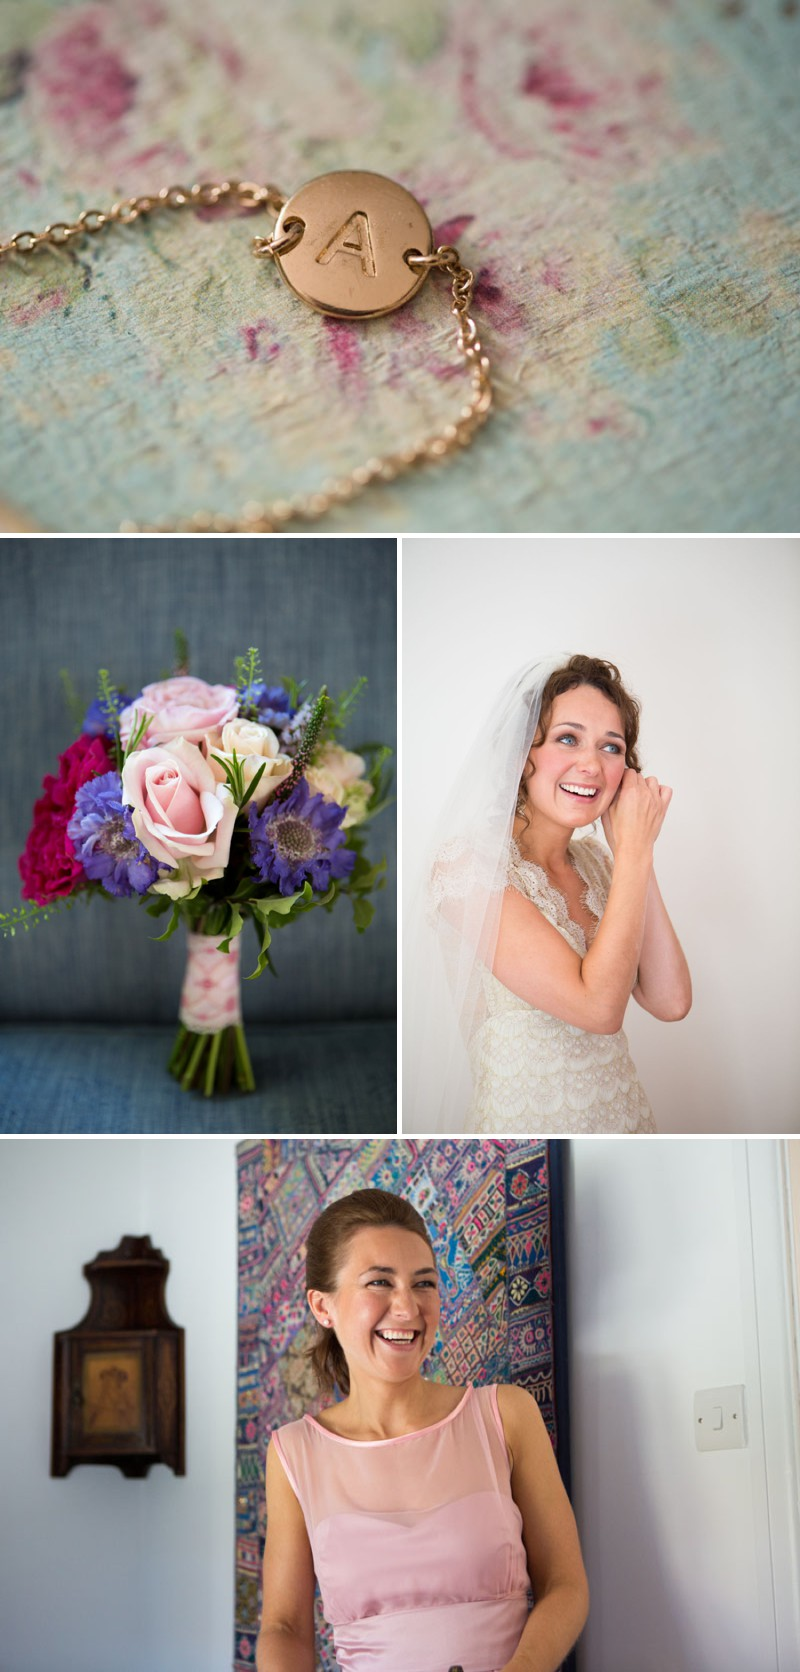 A Fusion Welsh Greek Cypriot Wedding With A Claire Pettibone Dress And A Colour Pop Bouquet By Lily Frank Photography. 0001 A Fusion Welsh Greek Cypriot Wedding.